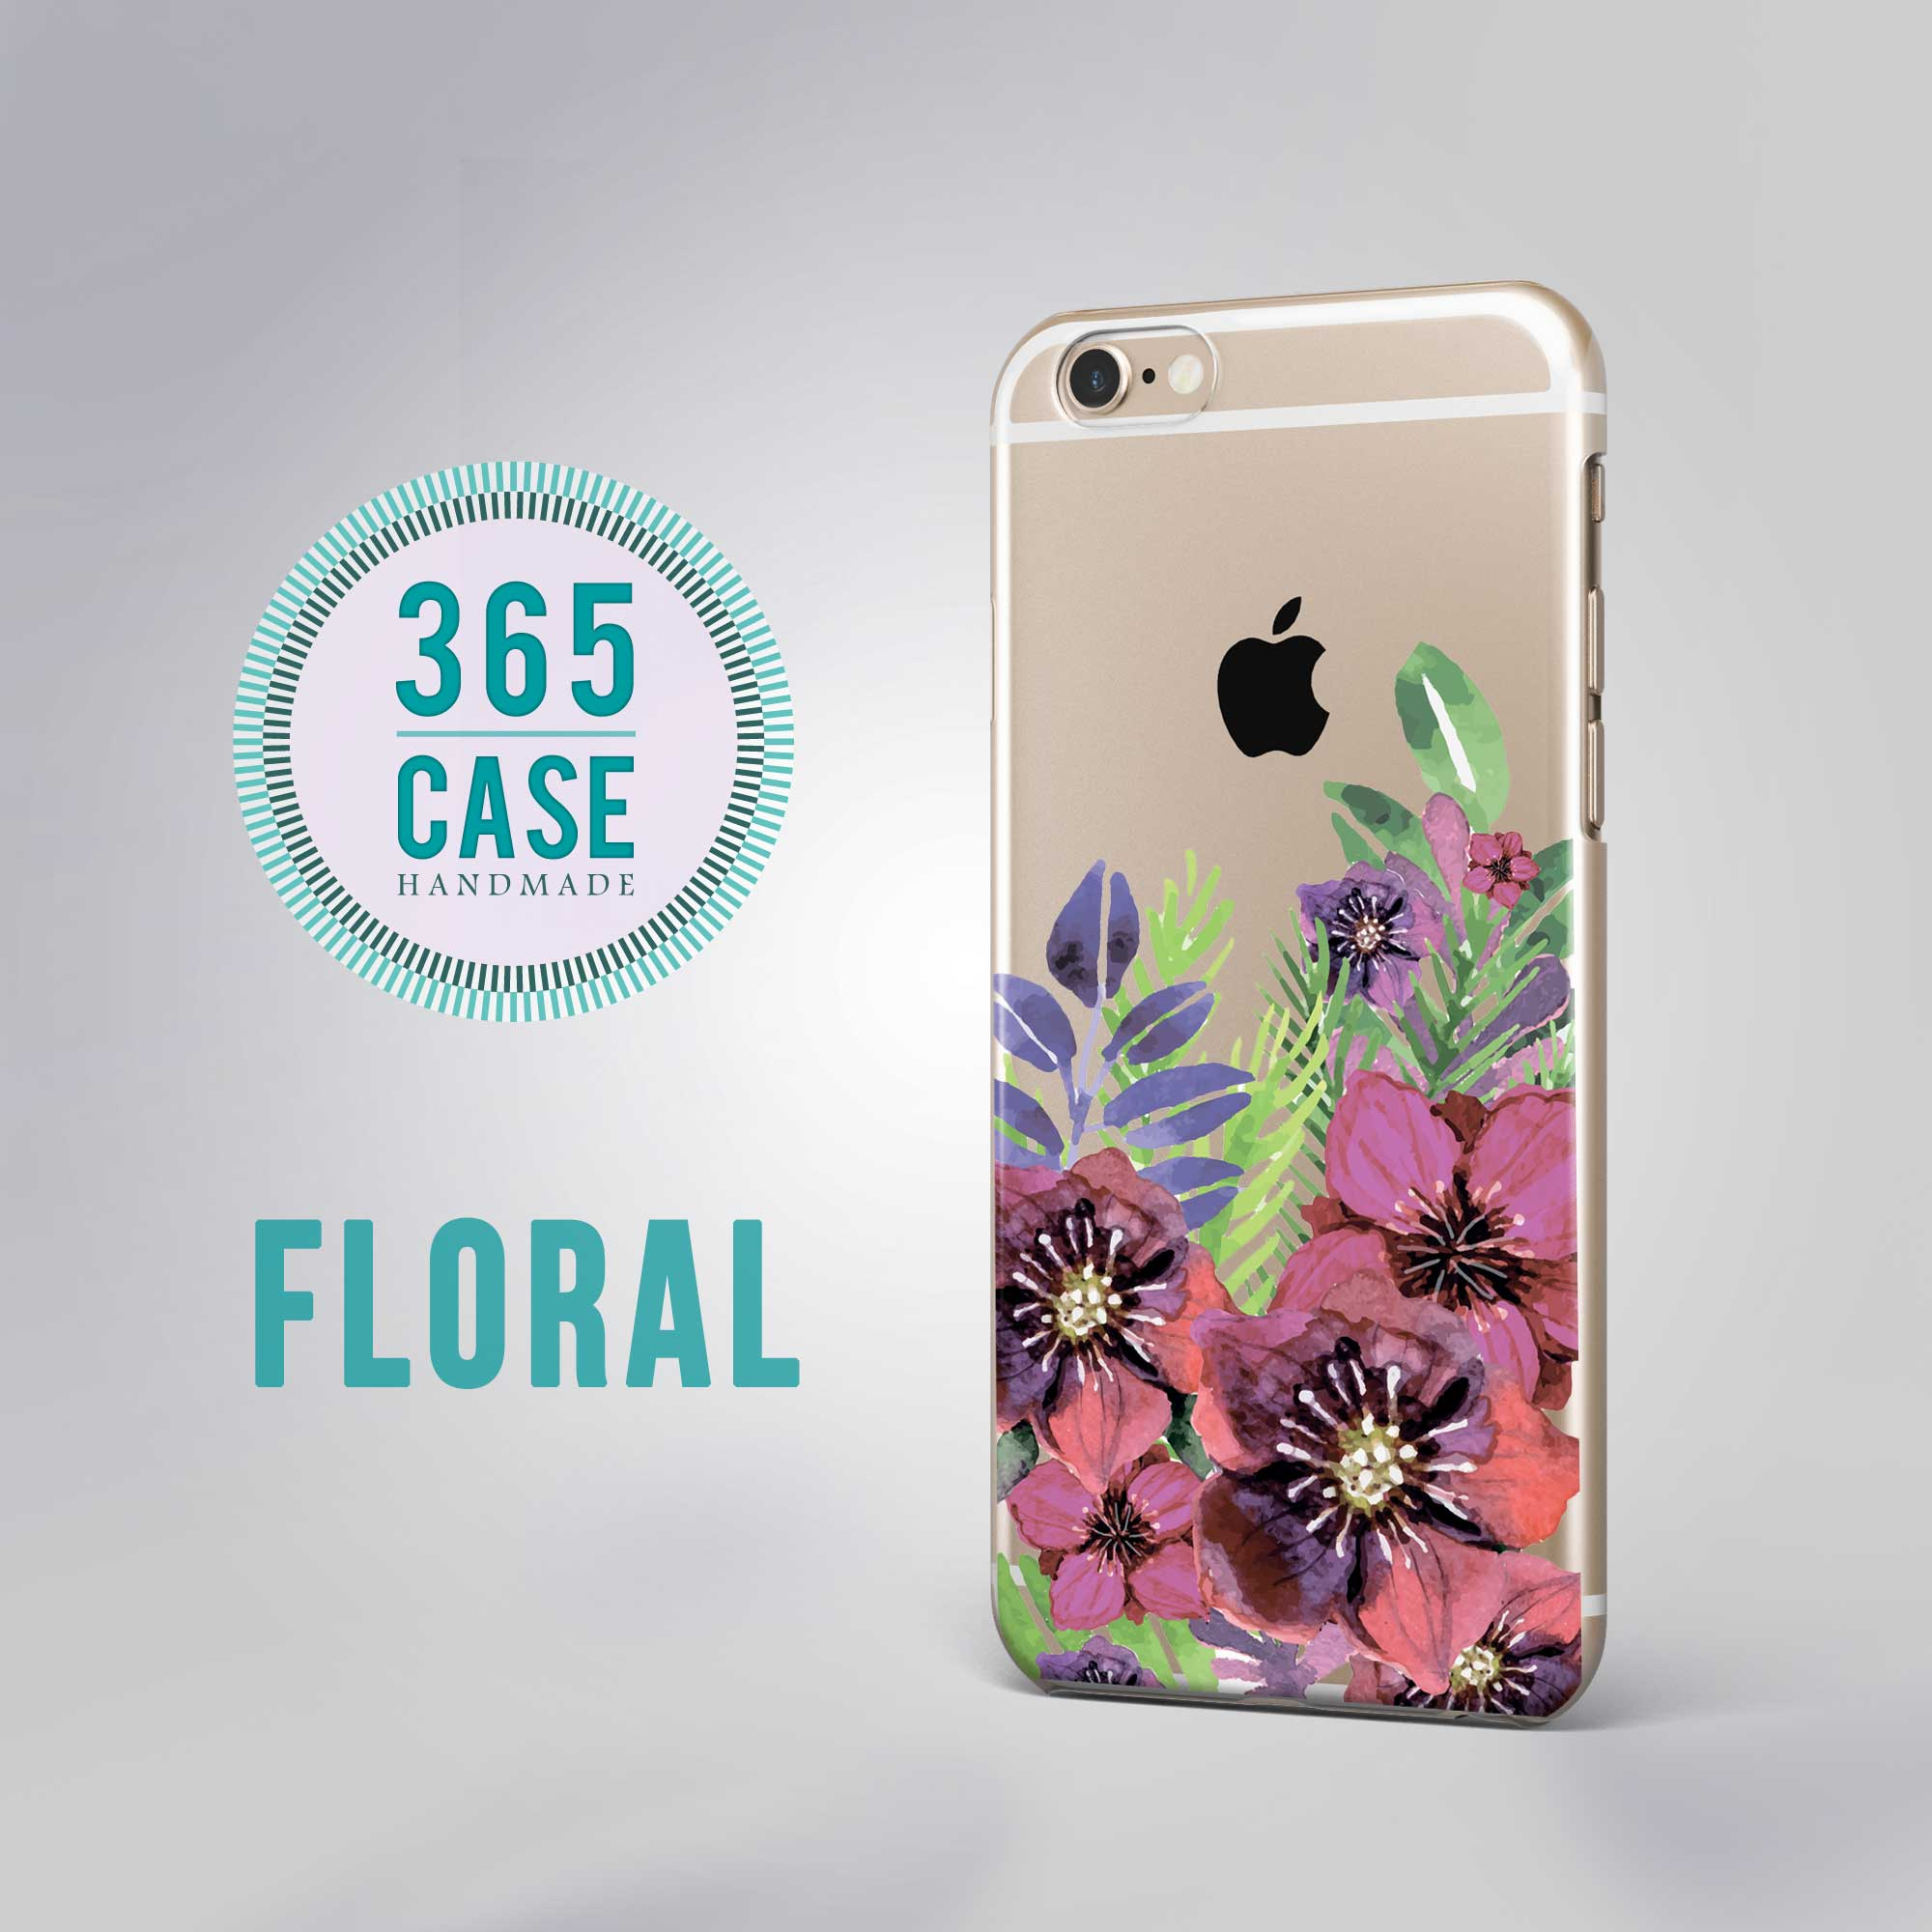 Samsung S6 Edge Plus Case Floral Iphone 6 Case Iphone 6s Case